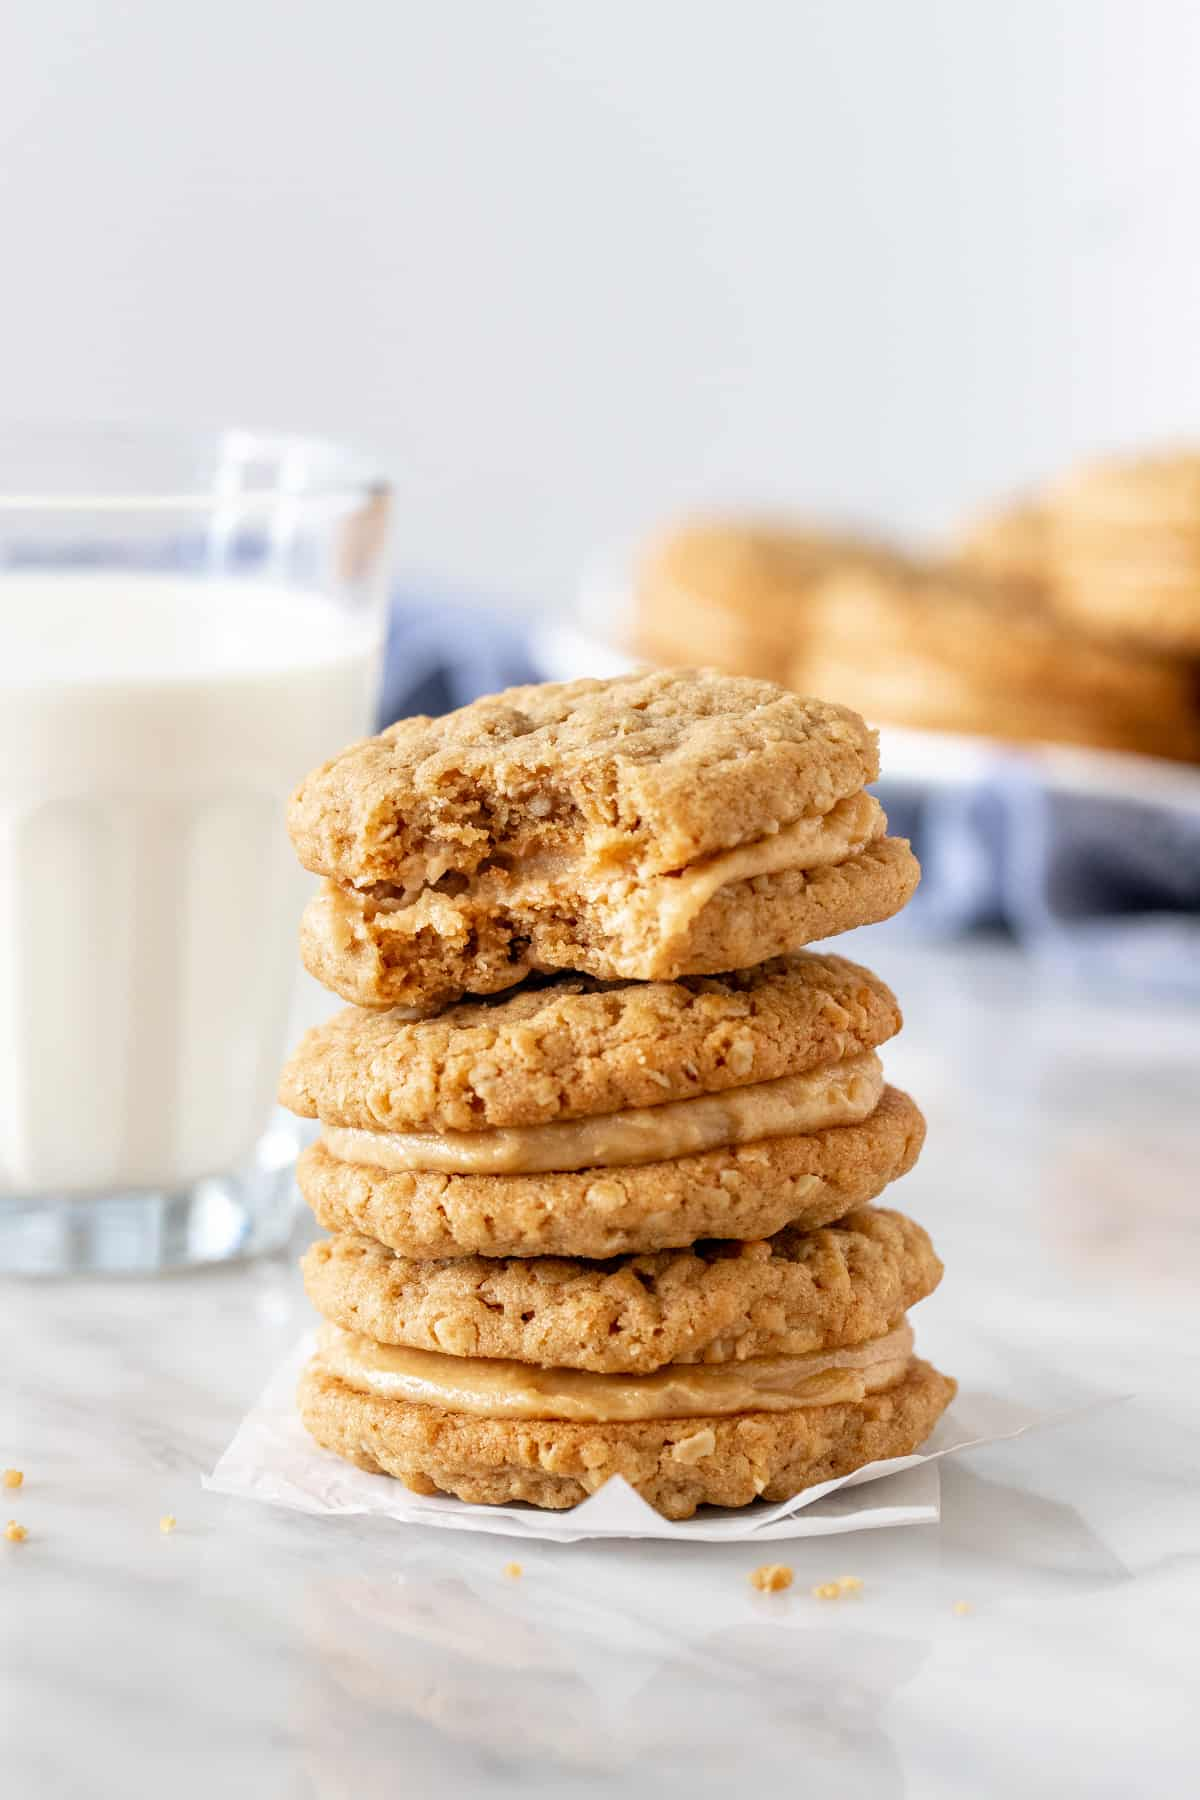 Stack of peanut butter sandwich cookies with glass of milk.